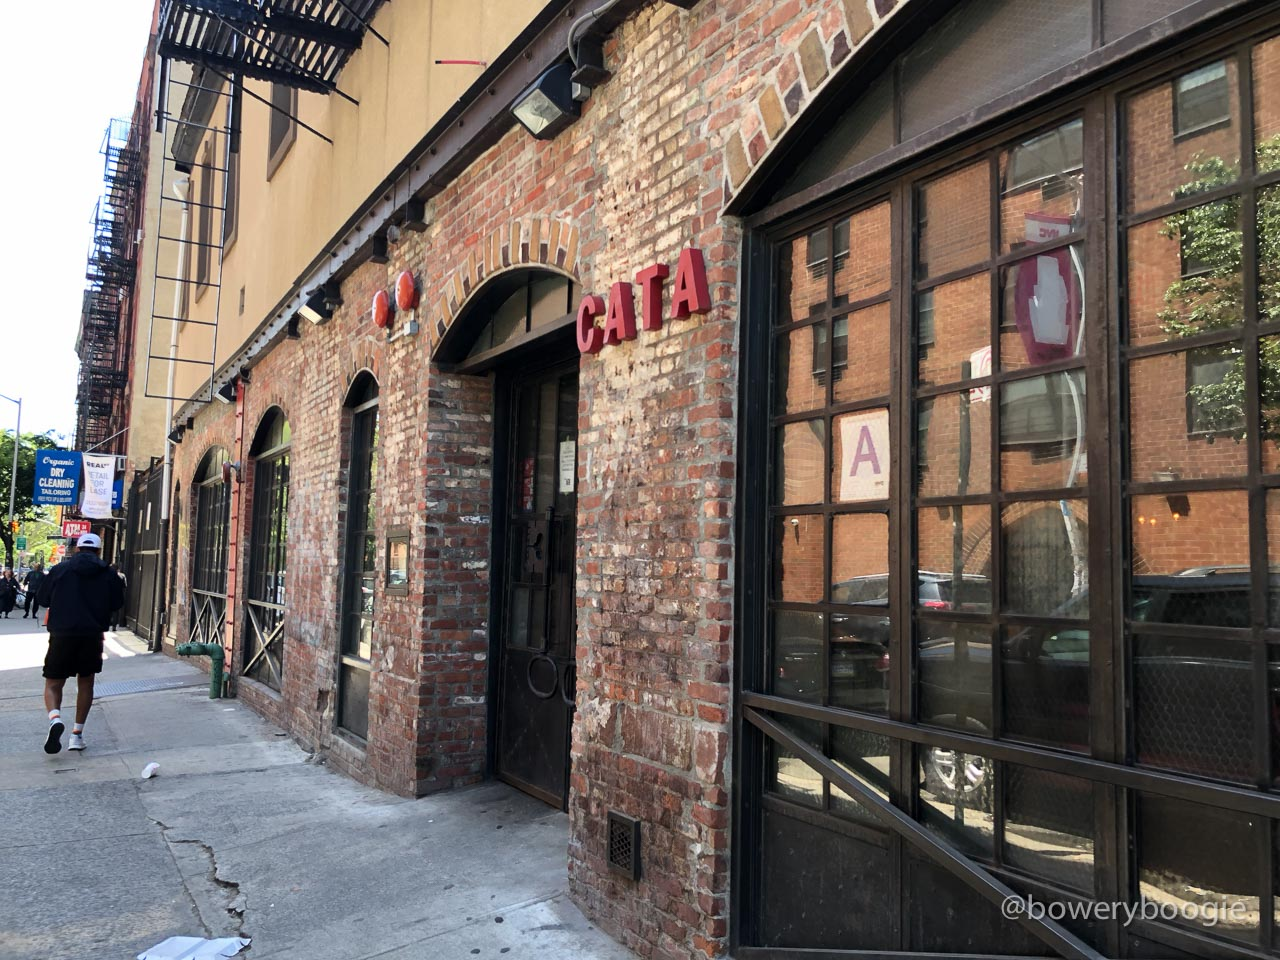 Cata Spanish Tapas Restaurant On The Bowery Fades Out